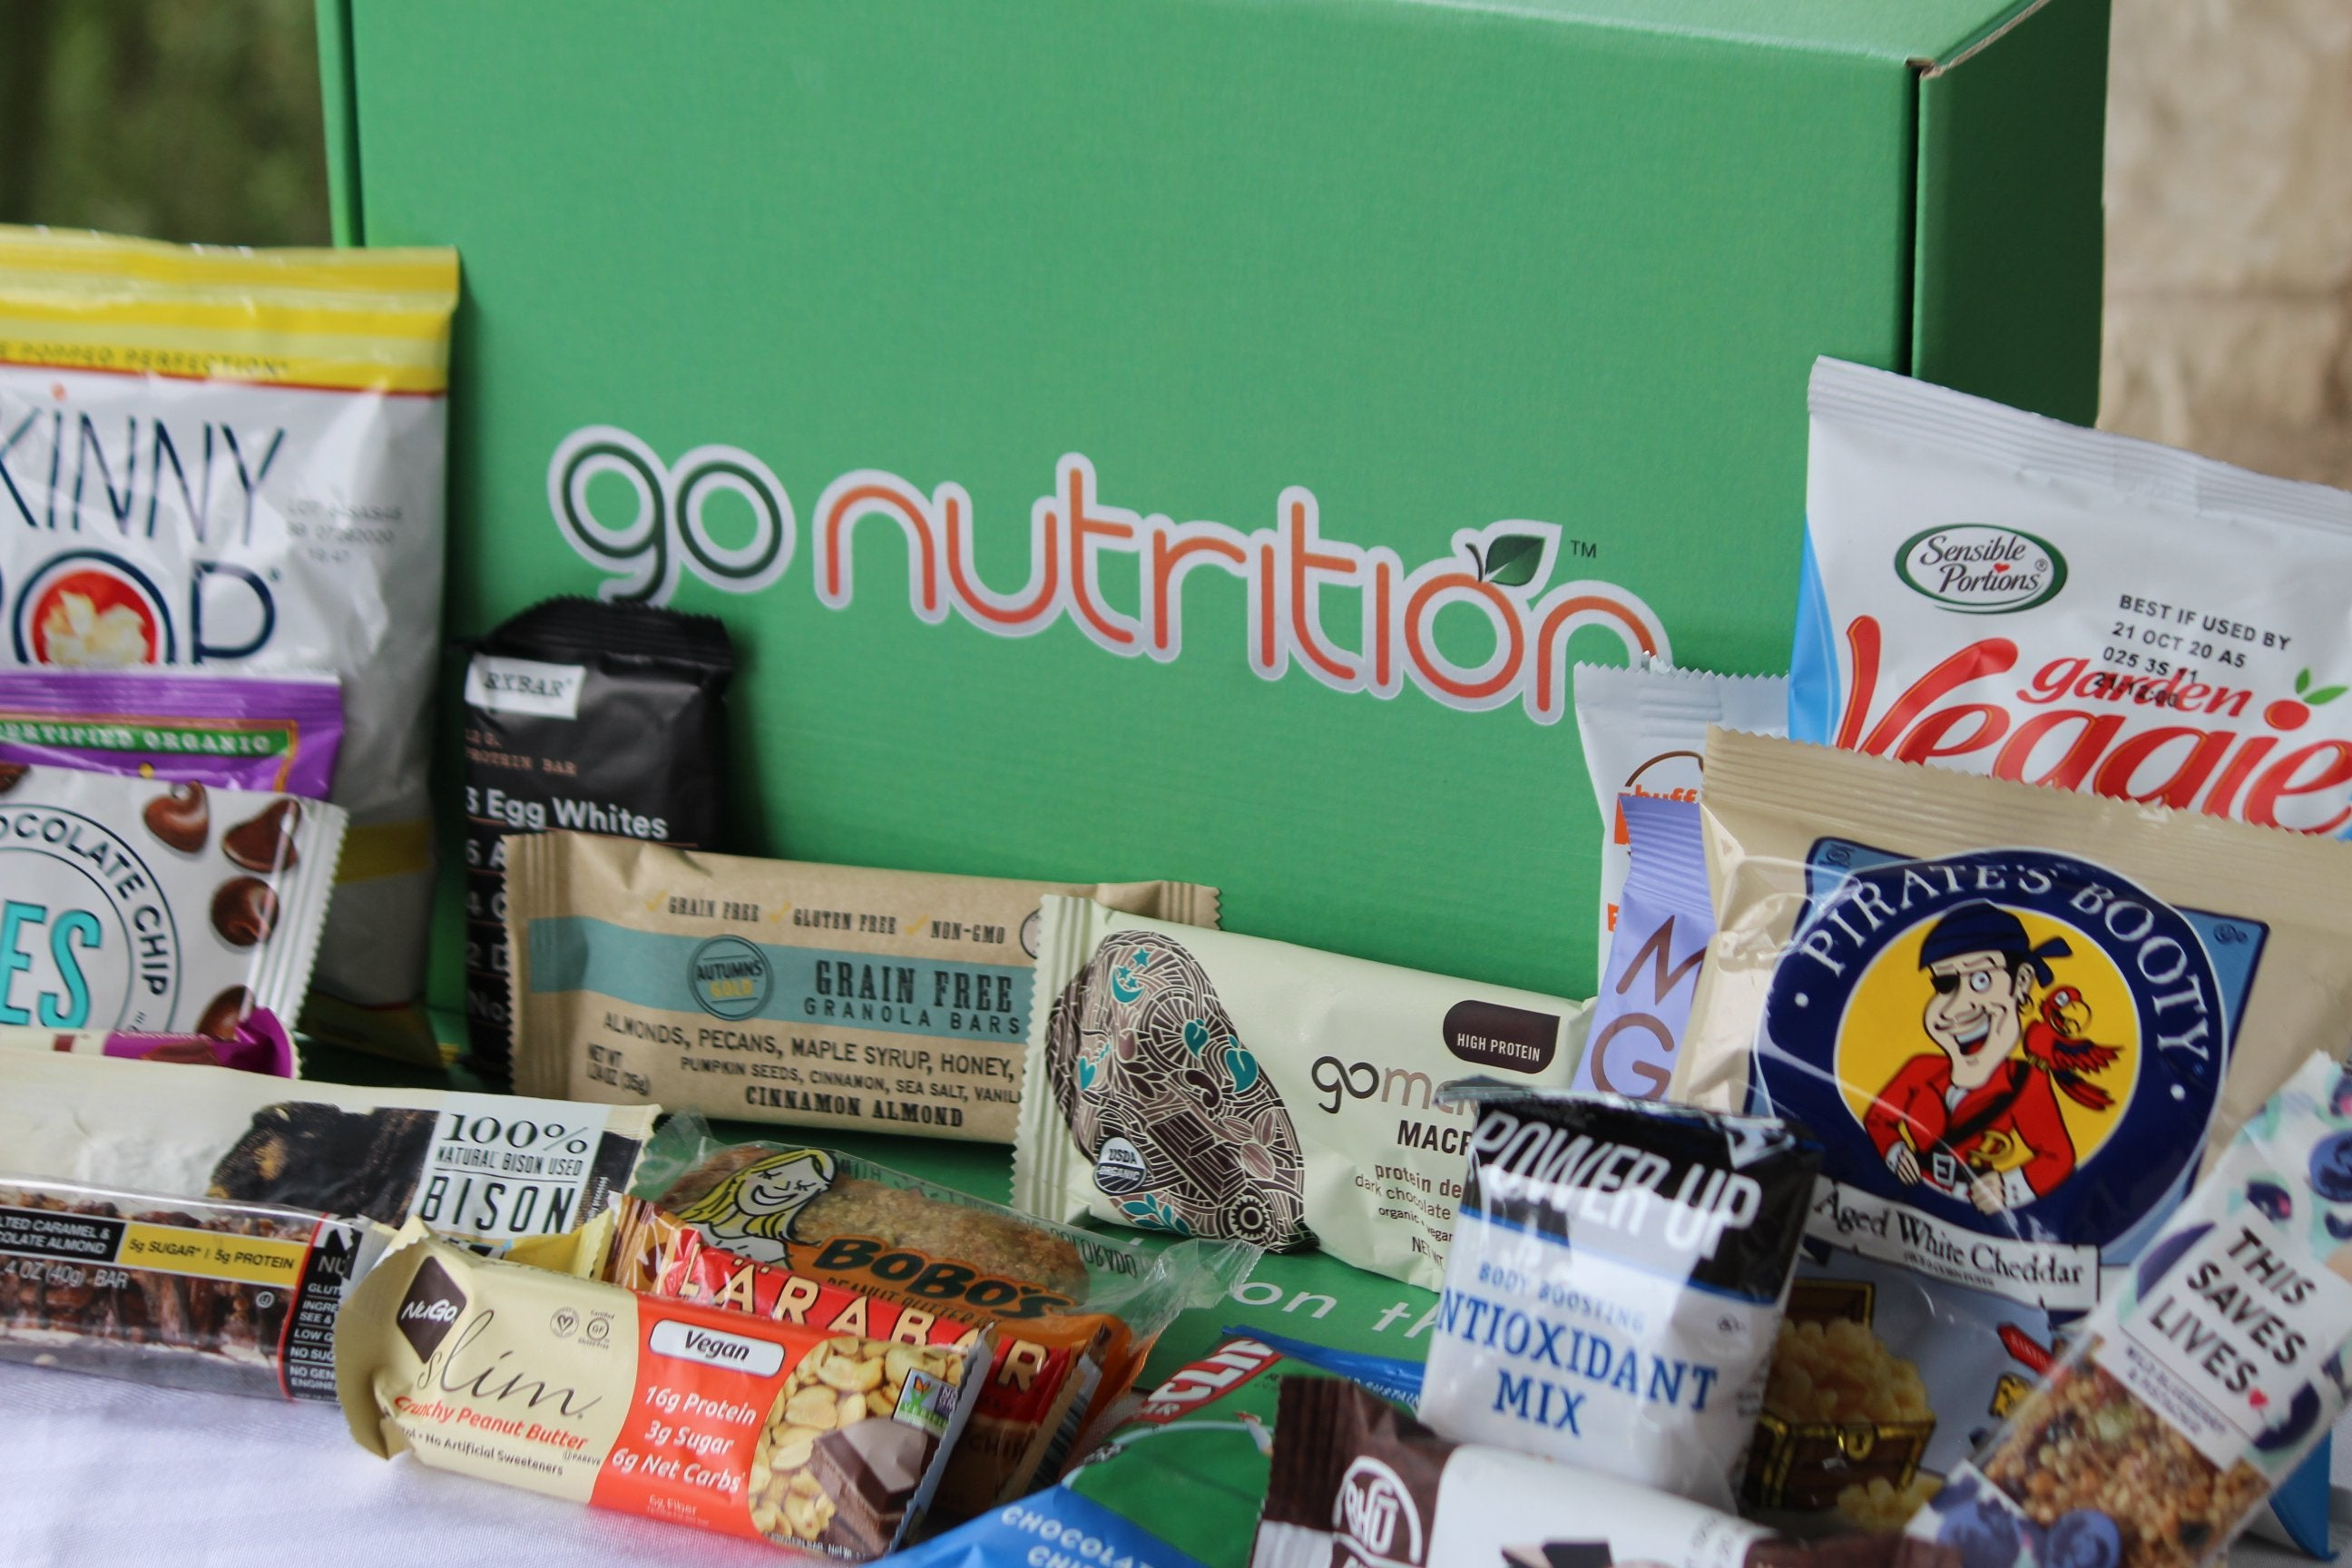 Go_Nutrition_Hipster_Snack_Box_3